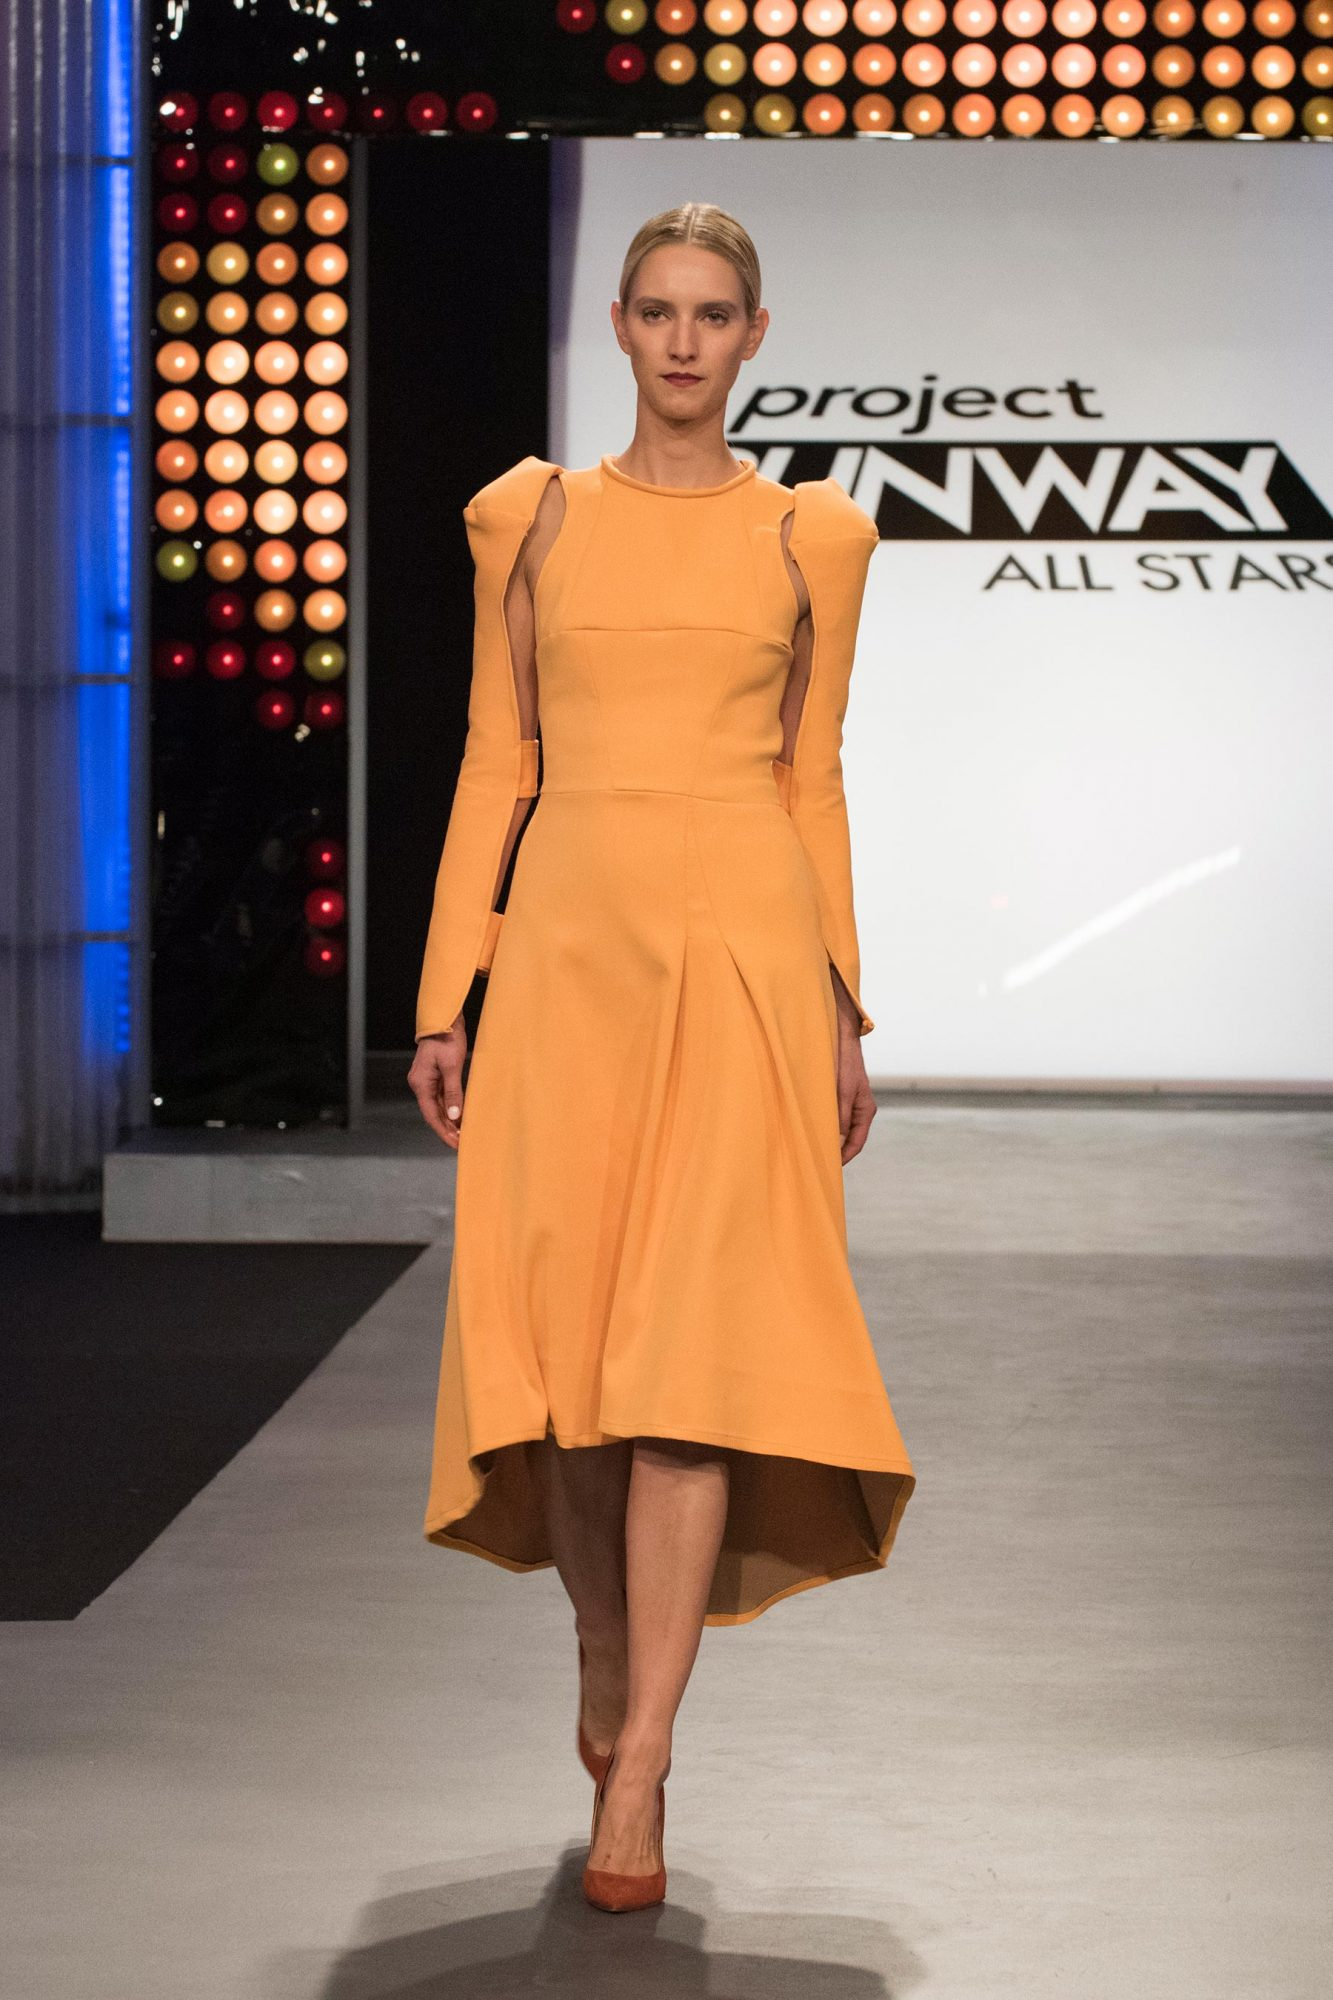 Project Runway All Stars CR: Lifetime